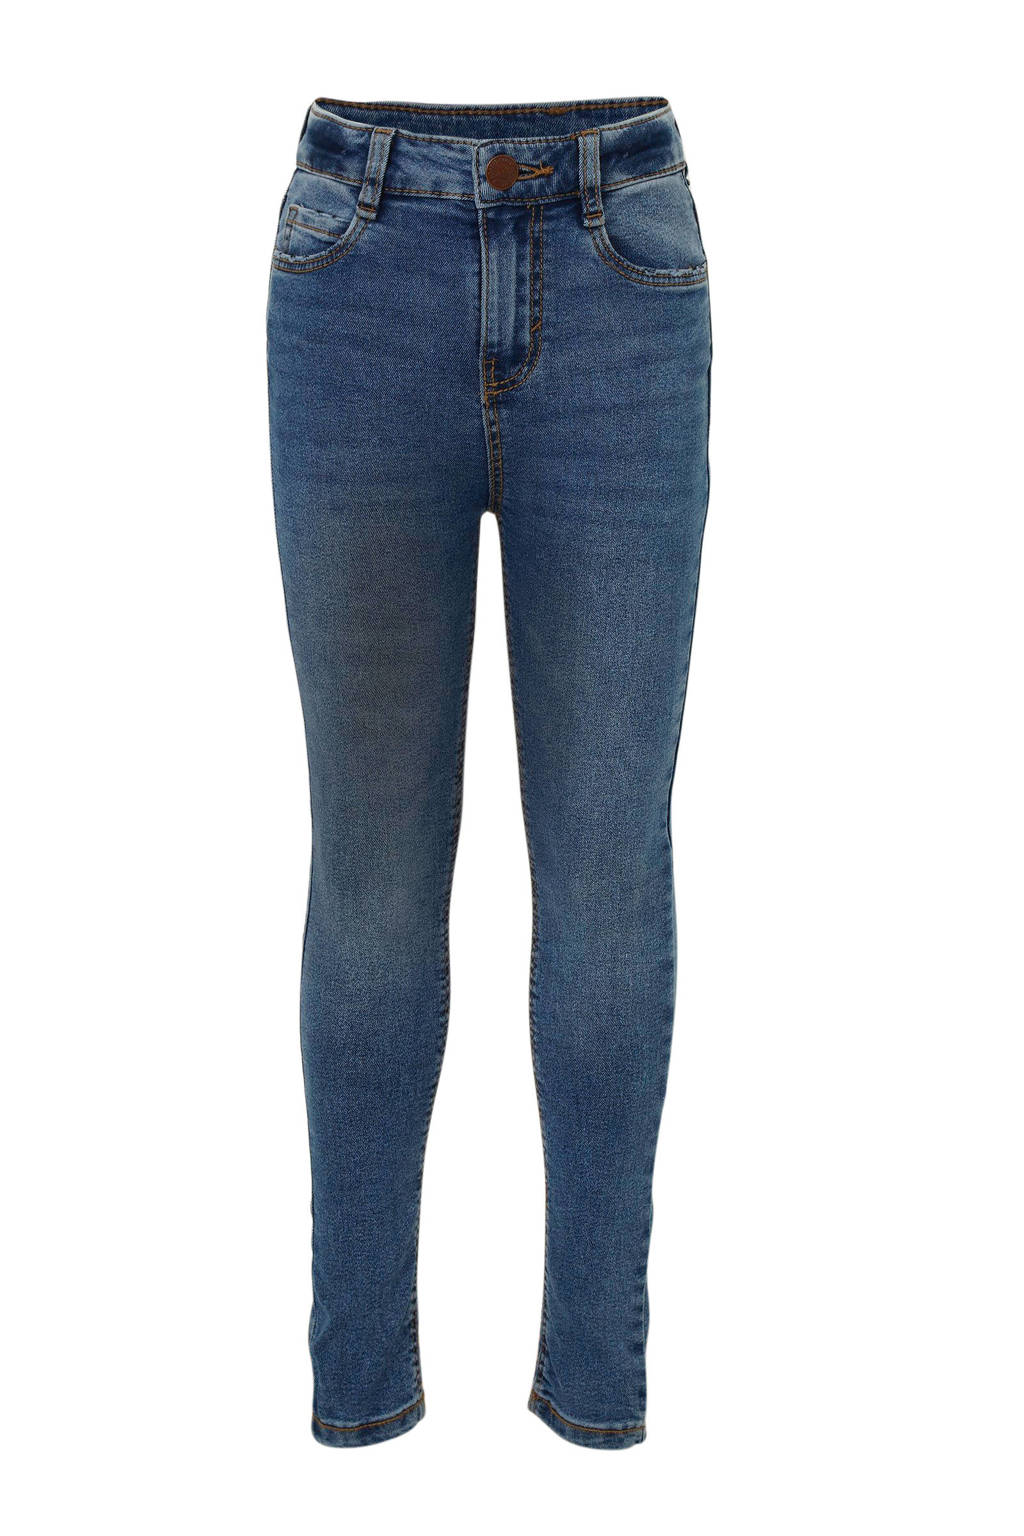 C&A Here & There super skinny jeans stonewashed, Stonewashed